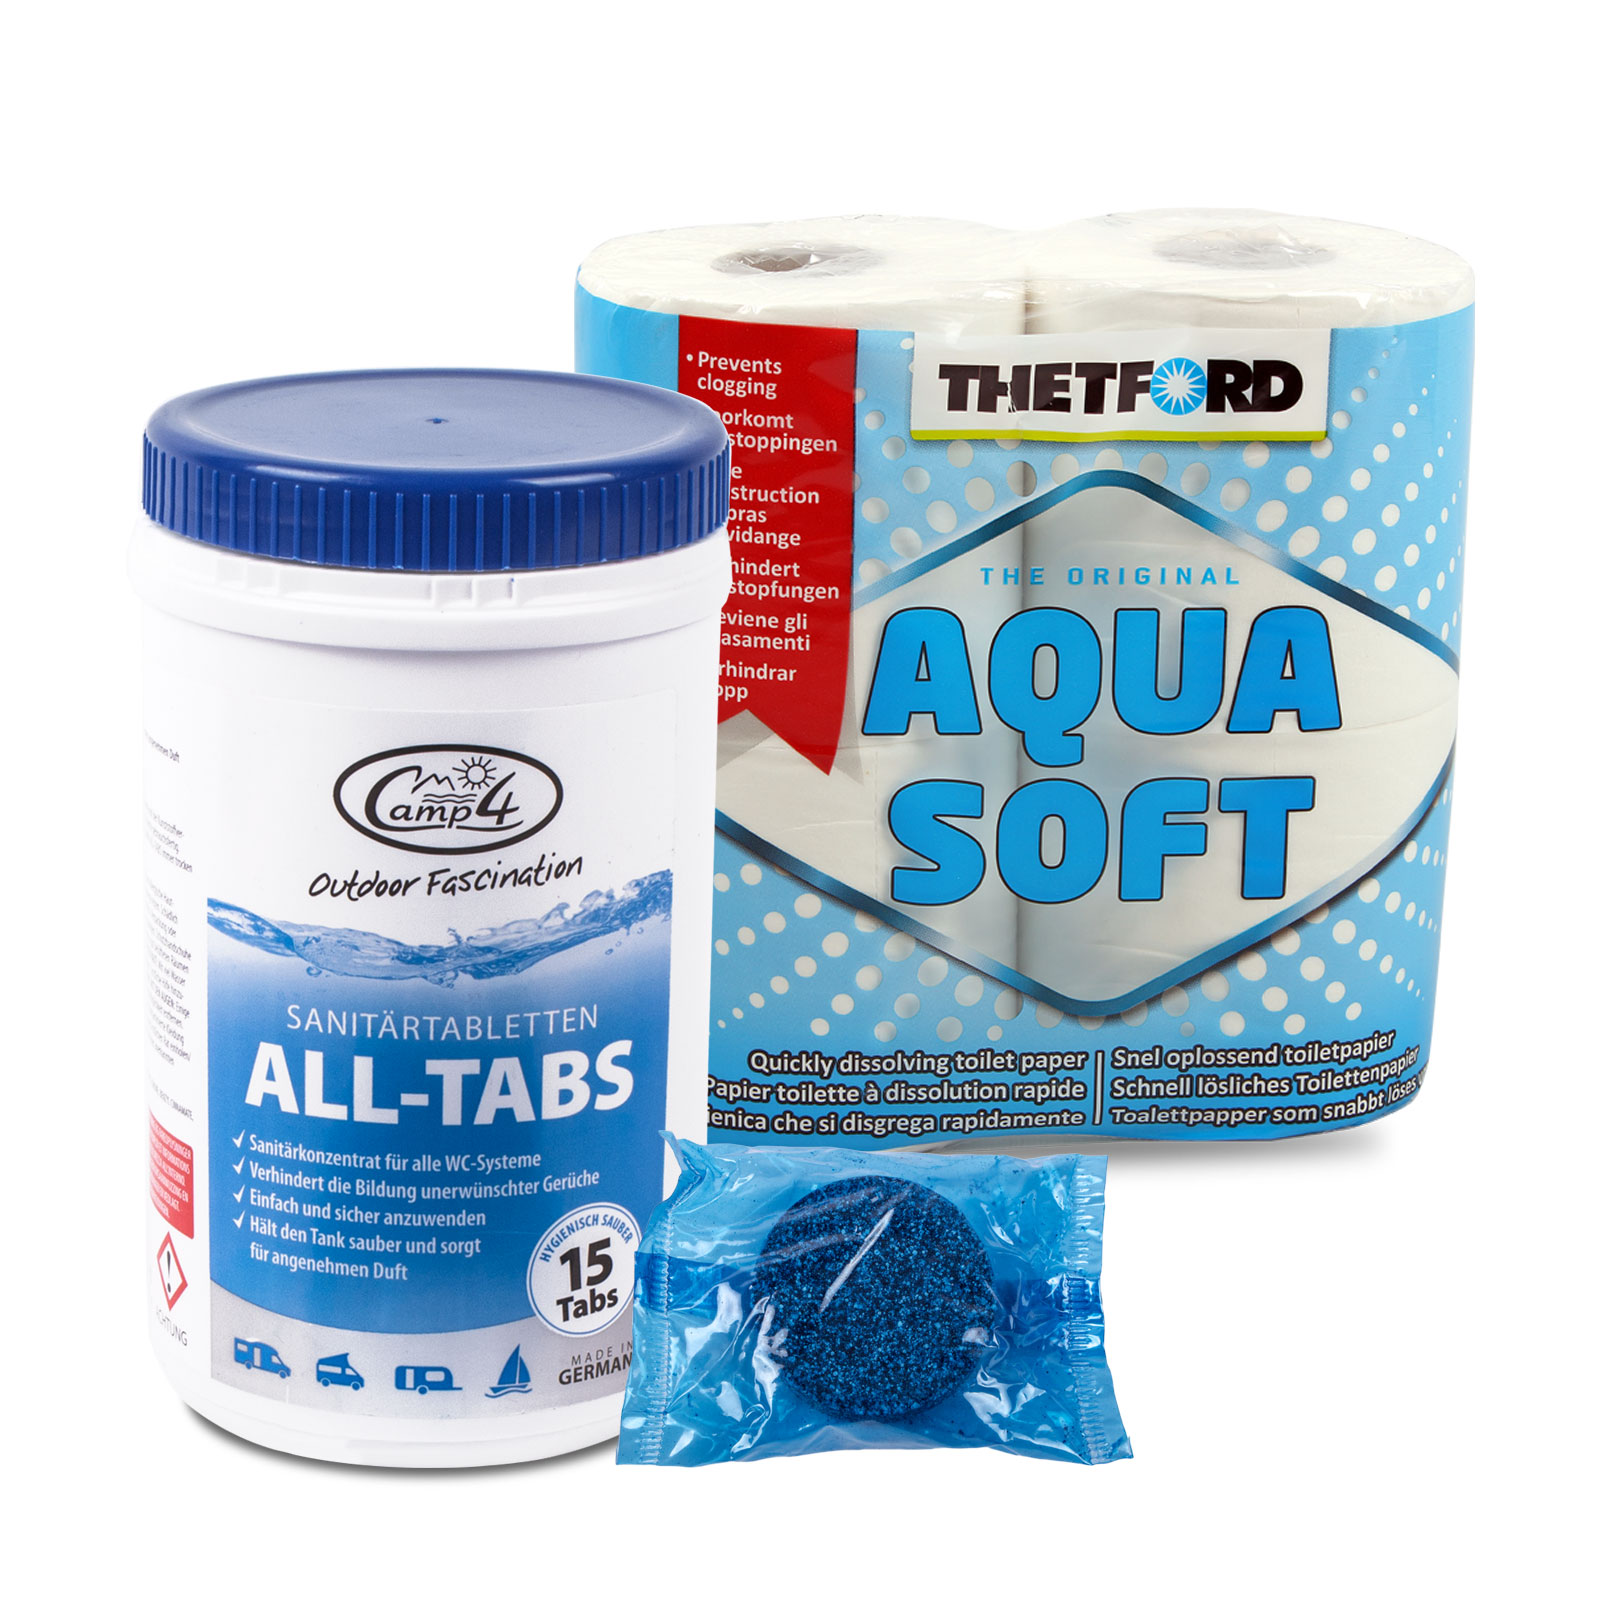 Camp4 All-Tabs Toilettentabletten 15 st., für Abwassertanks